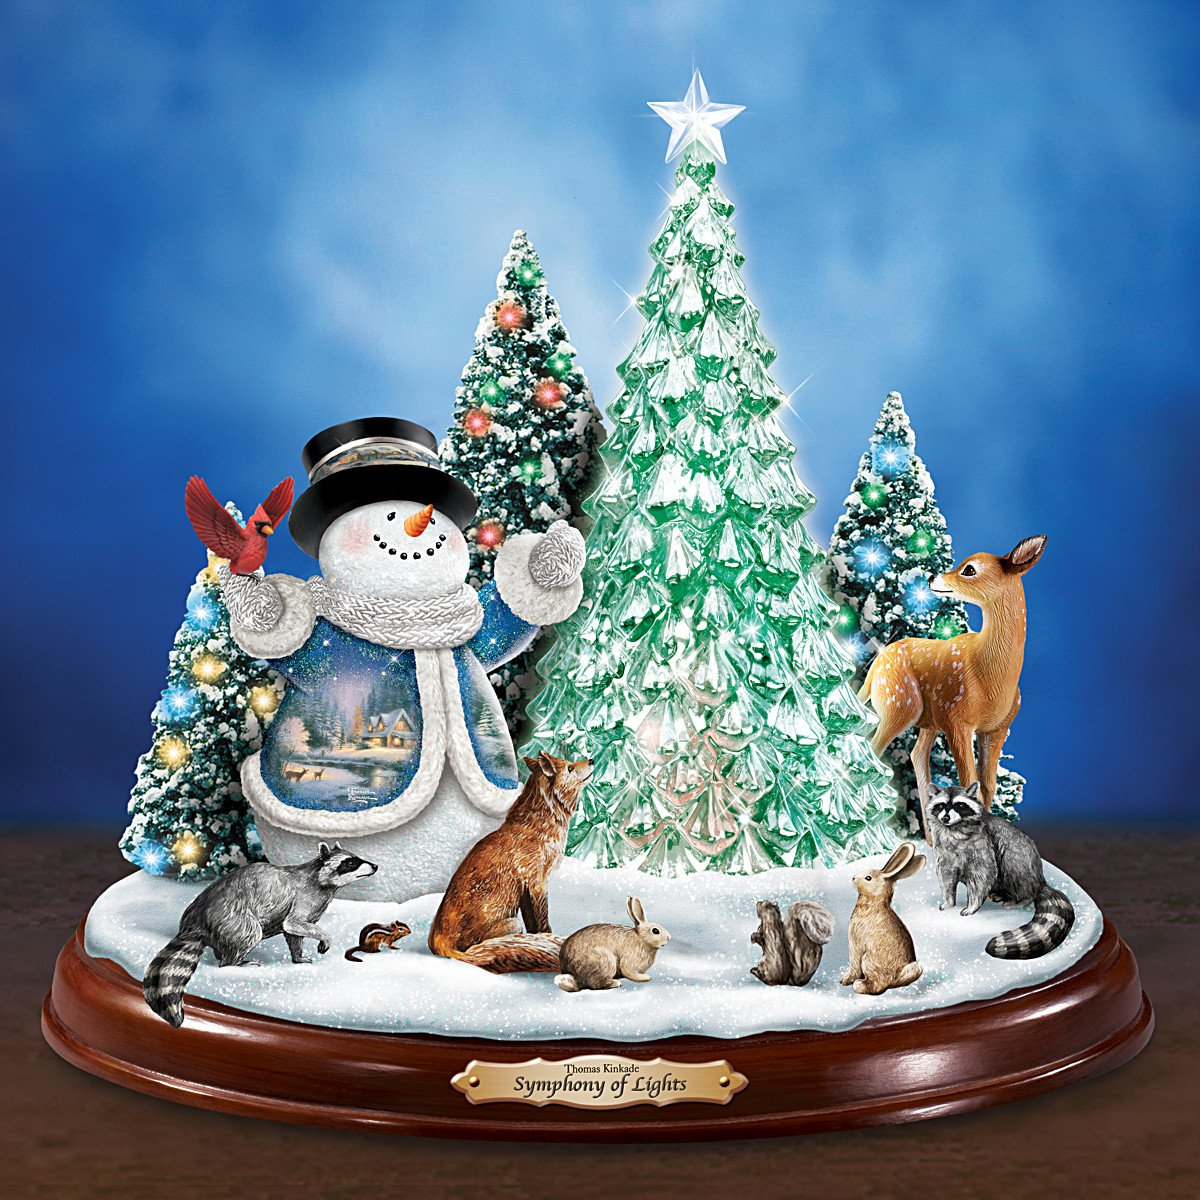 Kinkade christmas ornaments - Amazon Com Thomas Kinkade Christmas Sculpture With Color Changing Lights Plus Art And Music By The Bradford Exchange Home Kitchen